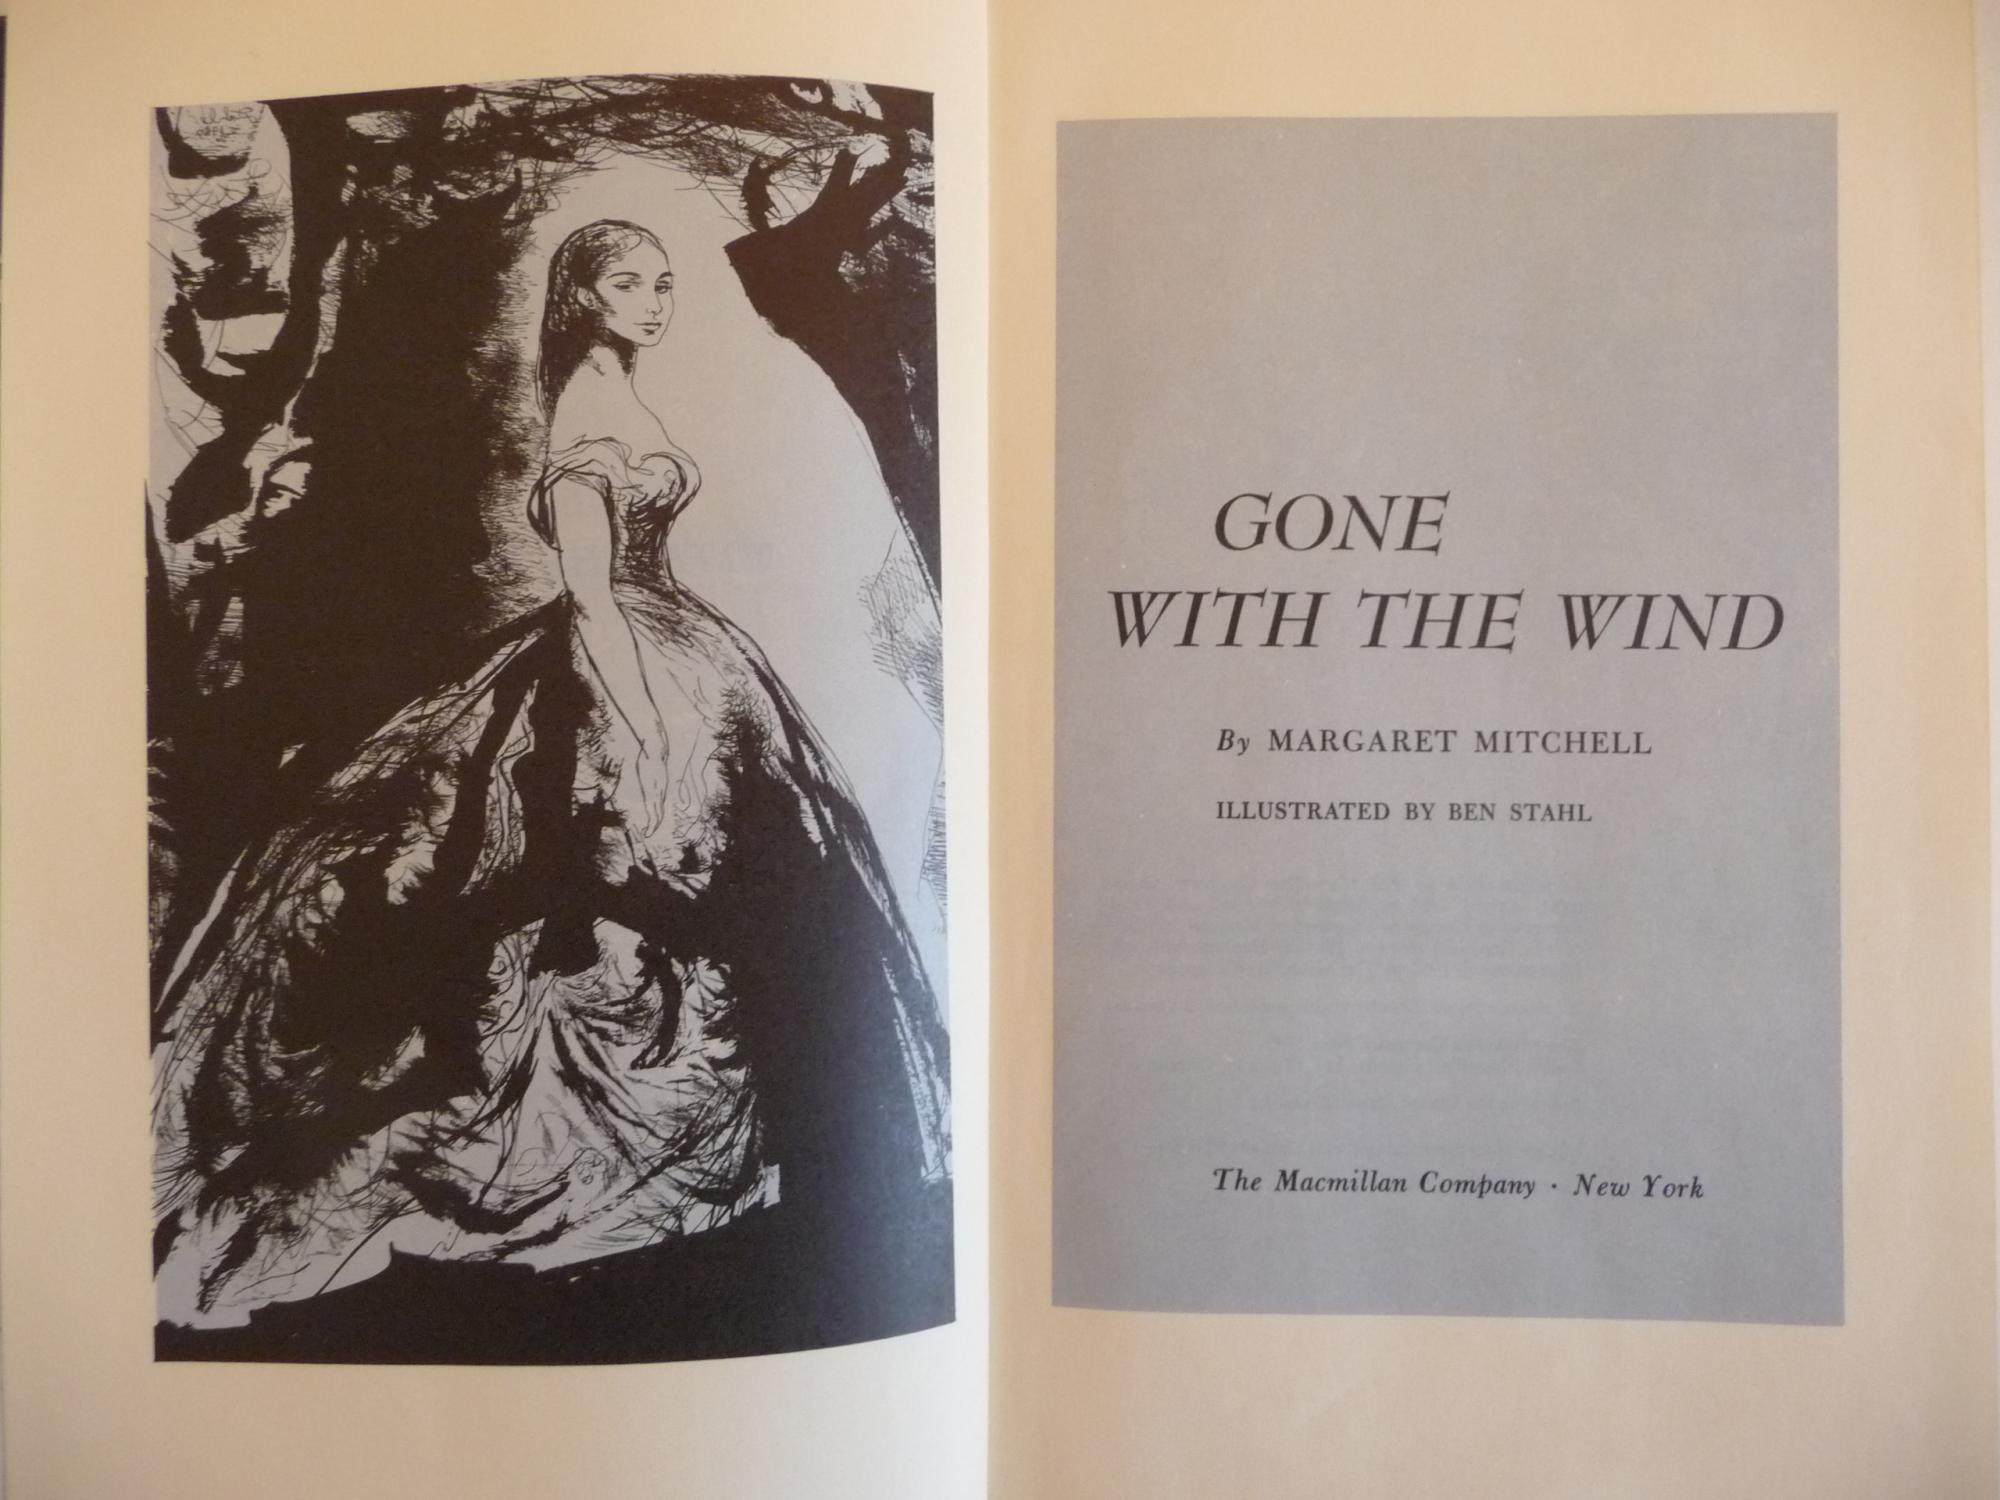 gone with the wind by margaret Read online or download for free graded reader ebook and audiobook gone with the wind by margaret mitchell of pre-intermediate level you can download in epub, mobi.